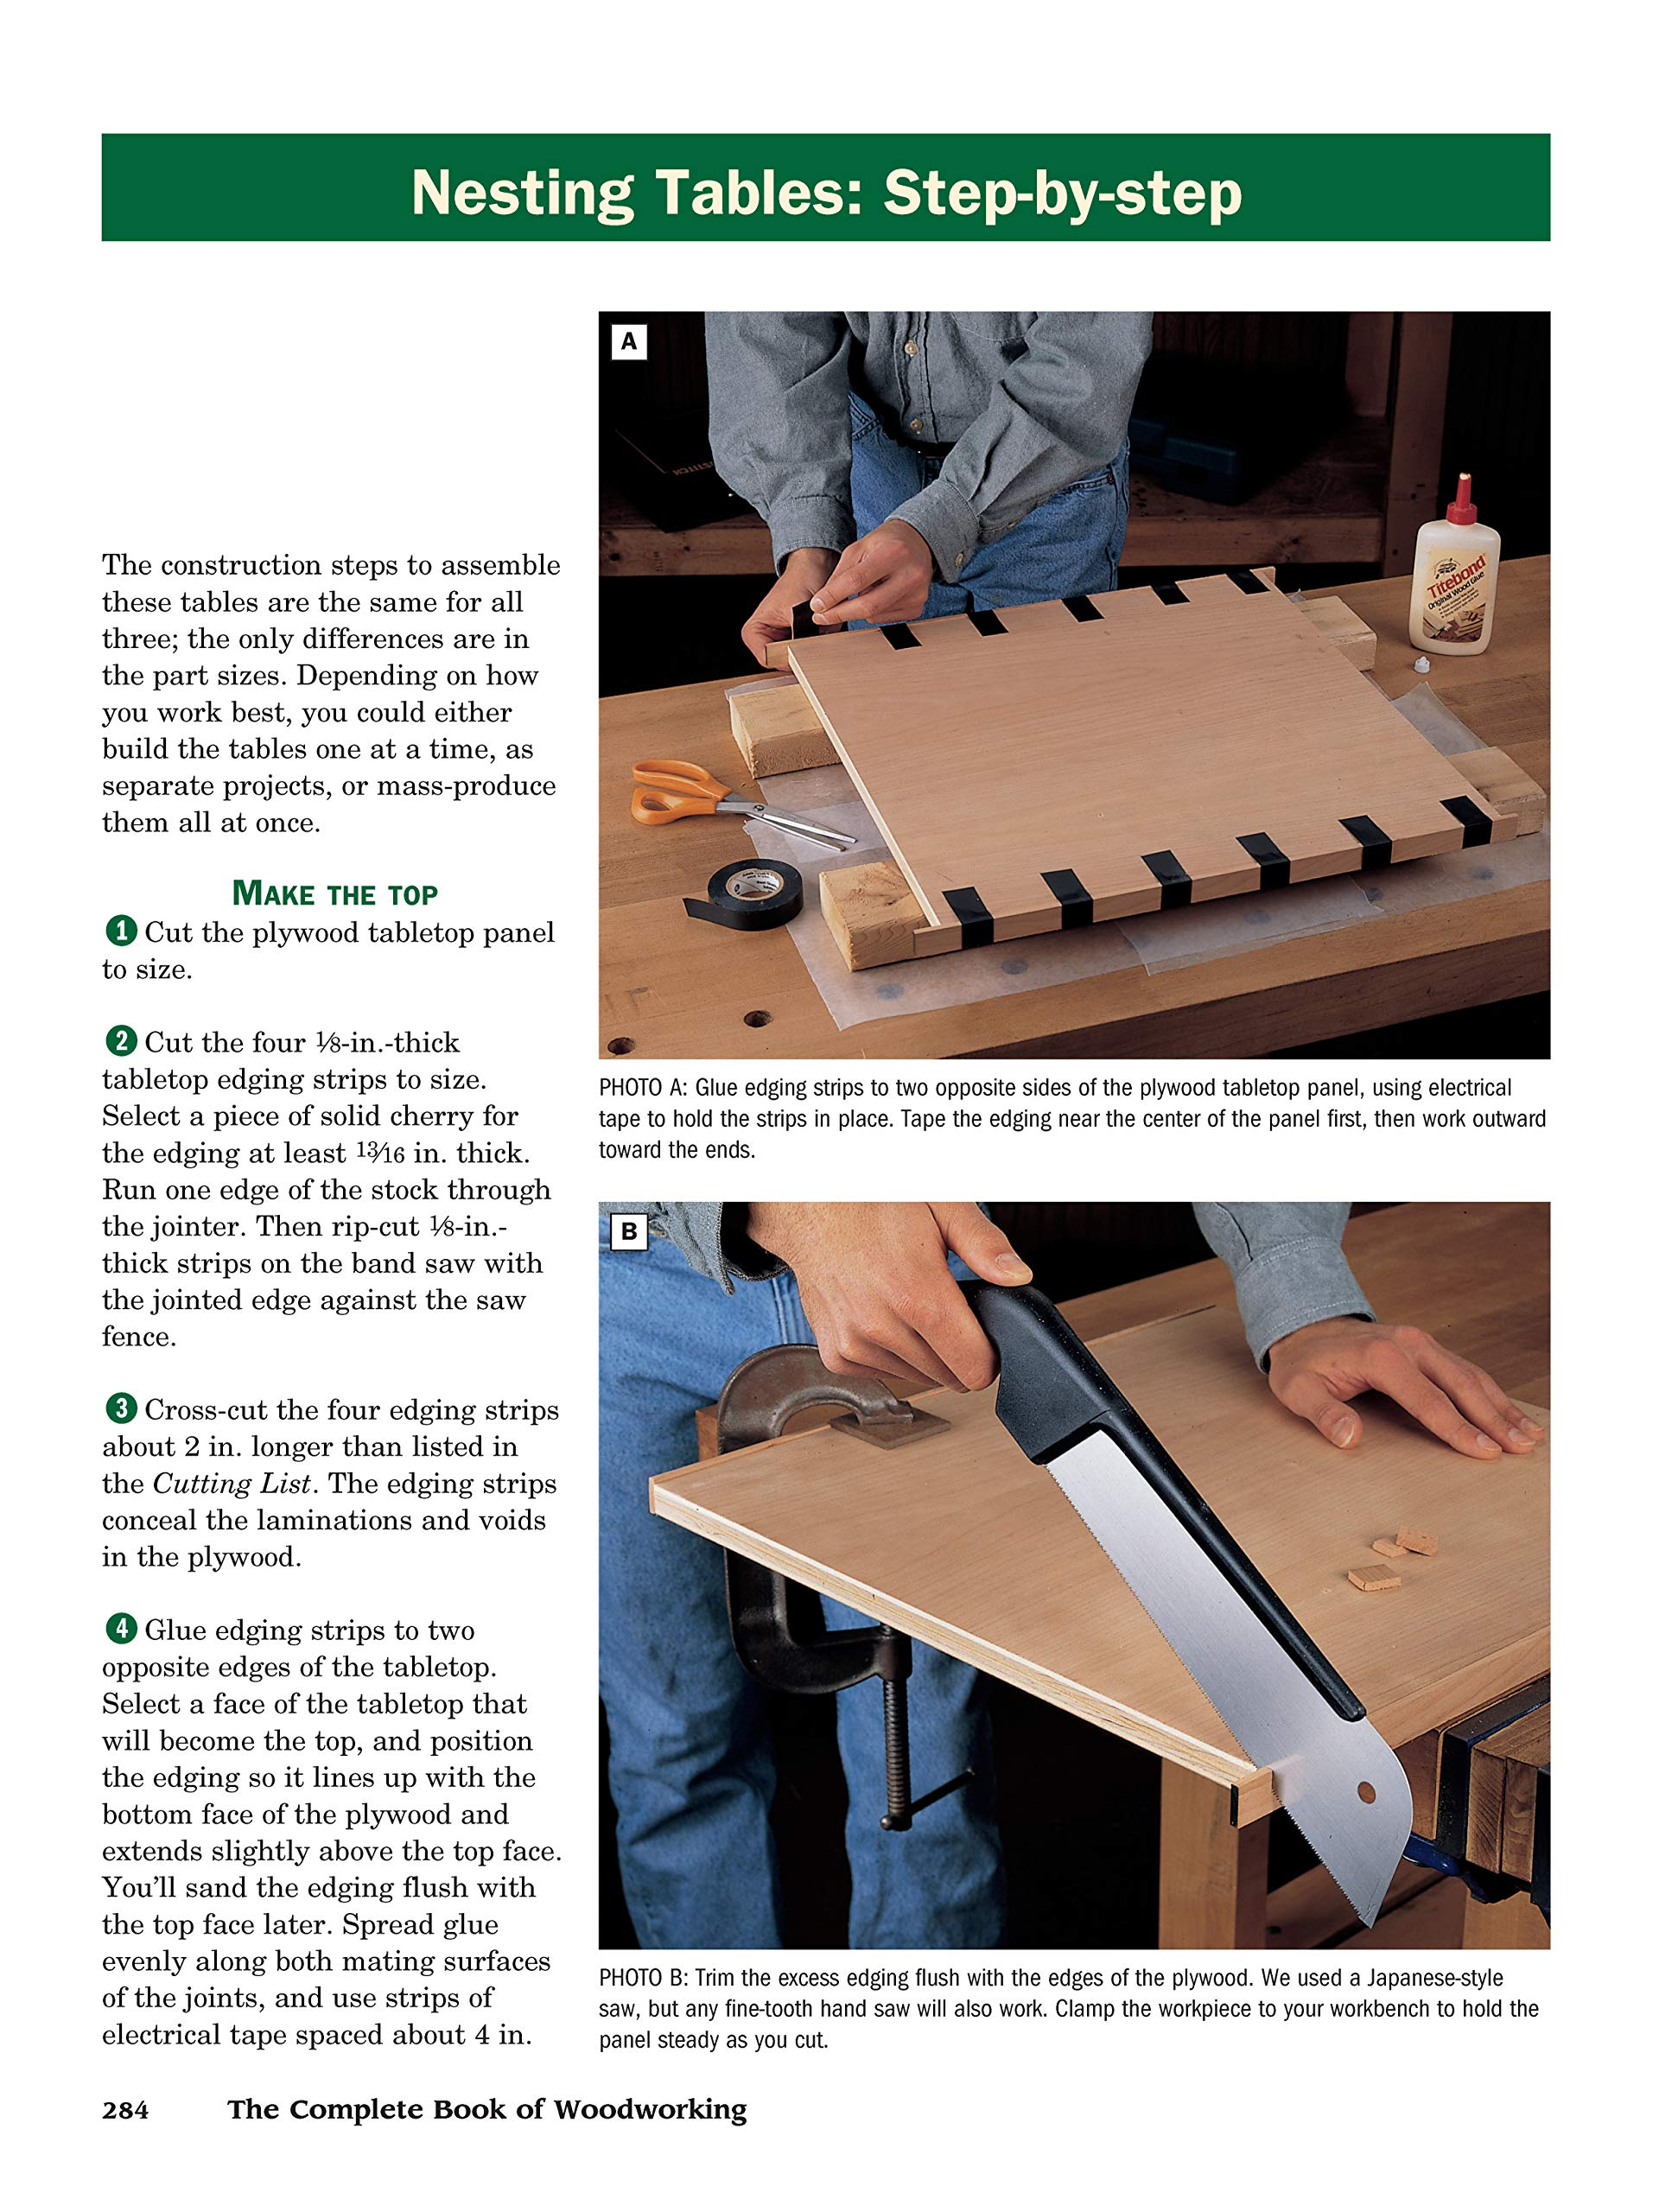 The Complete Book of Woodworking: Step-by-Step Guide to Essential Woodworking Skills, Techniques and Tips (Landauer) More Than 40 Projects with Detailed, Easy-to-Follow Plans and Over 200 Photos by Design Originals (Image #6)